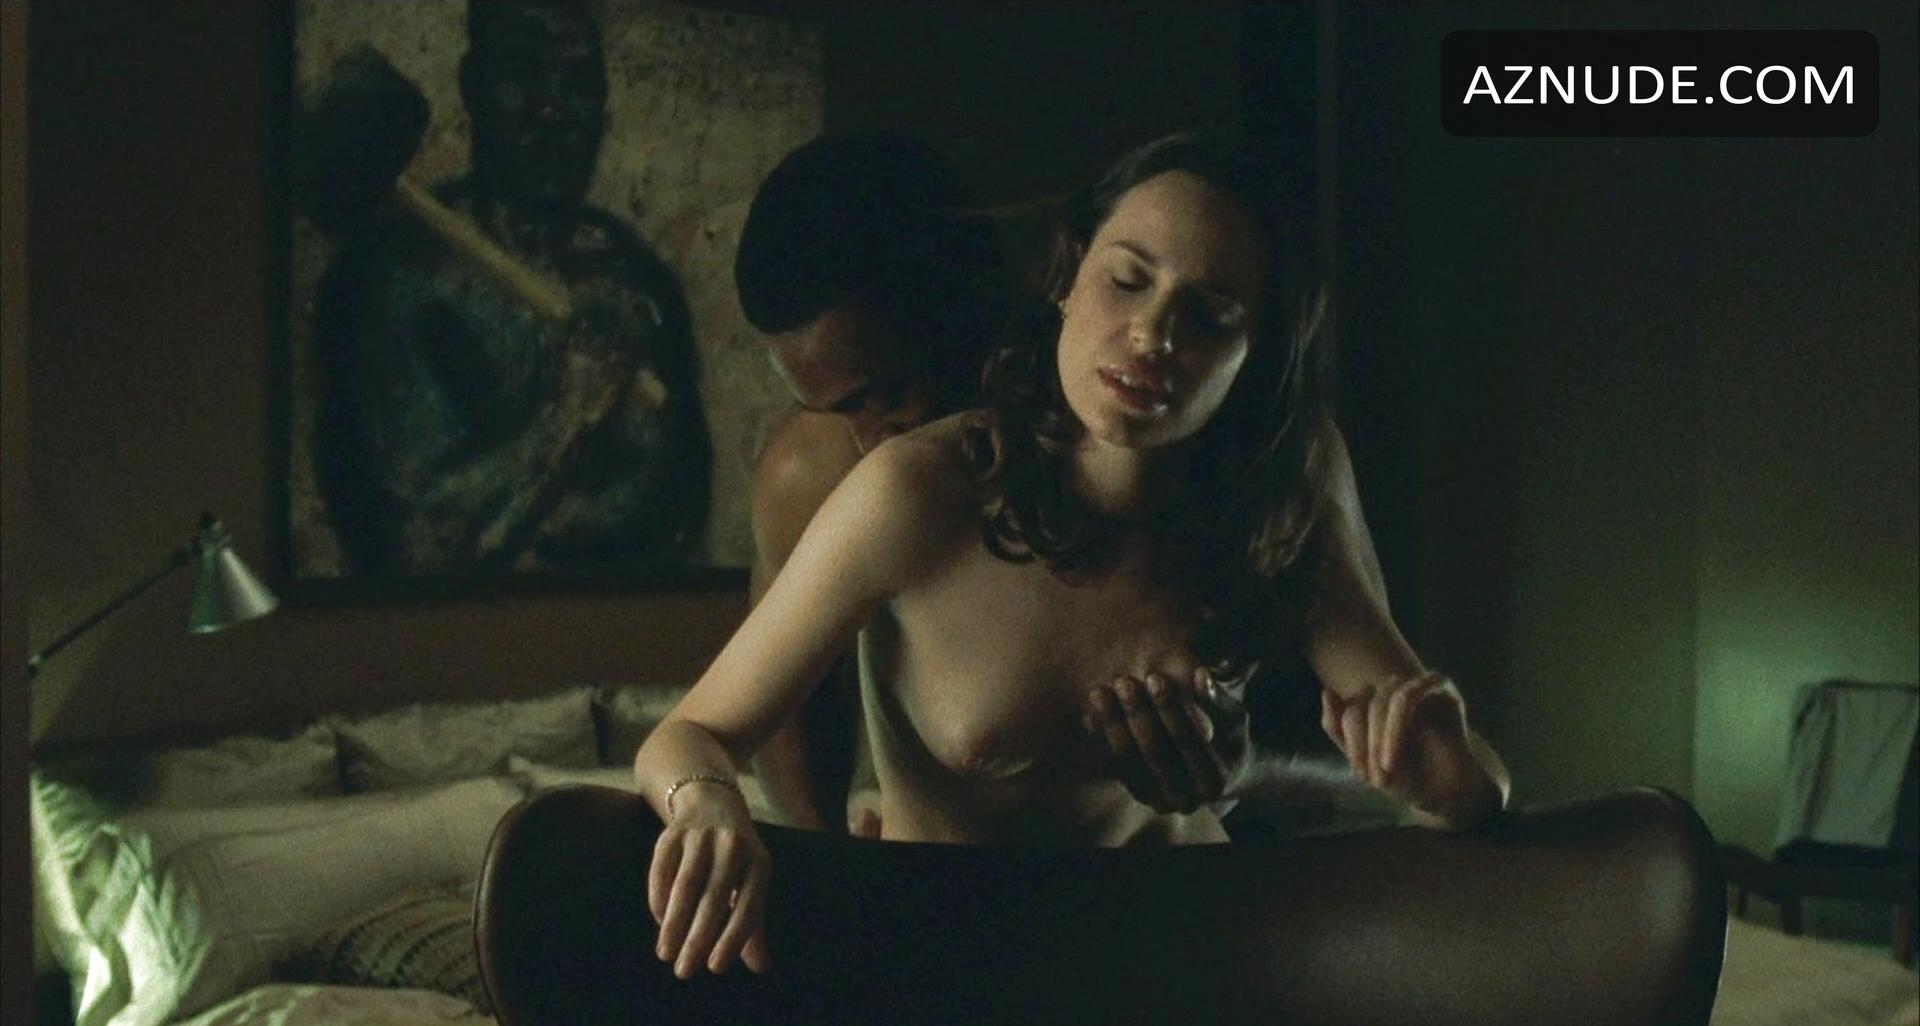 Kerry washington nude the last king of scotland - 3 part 1